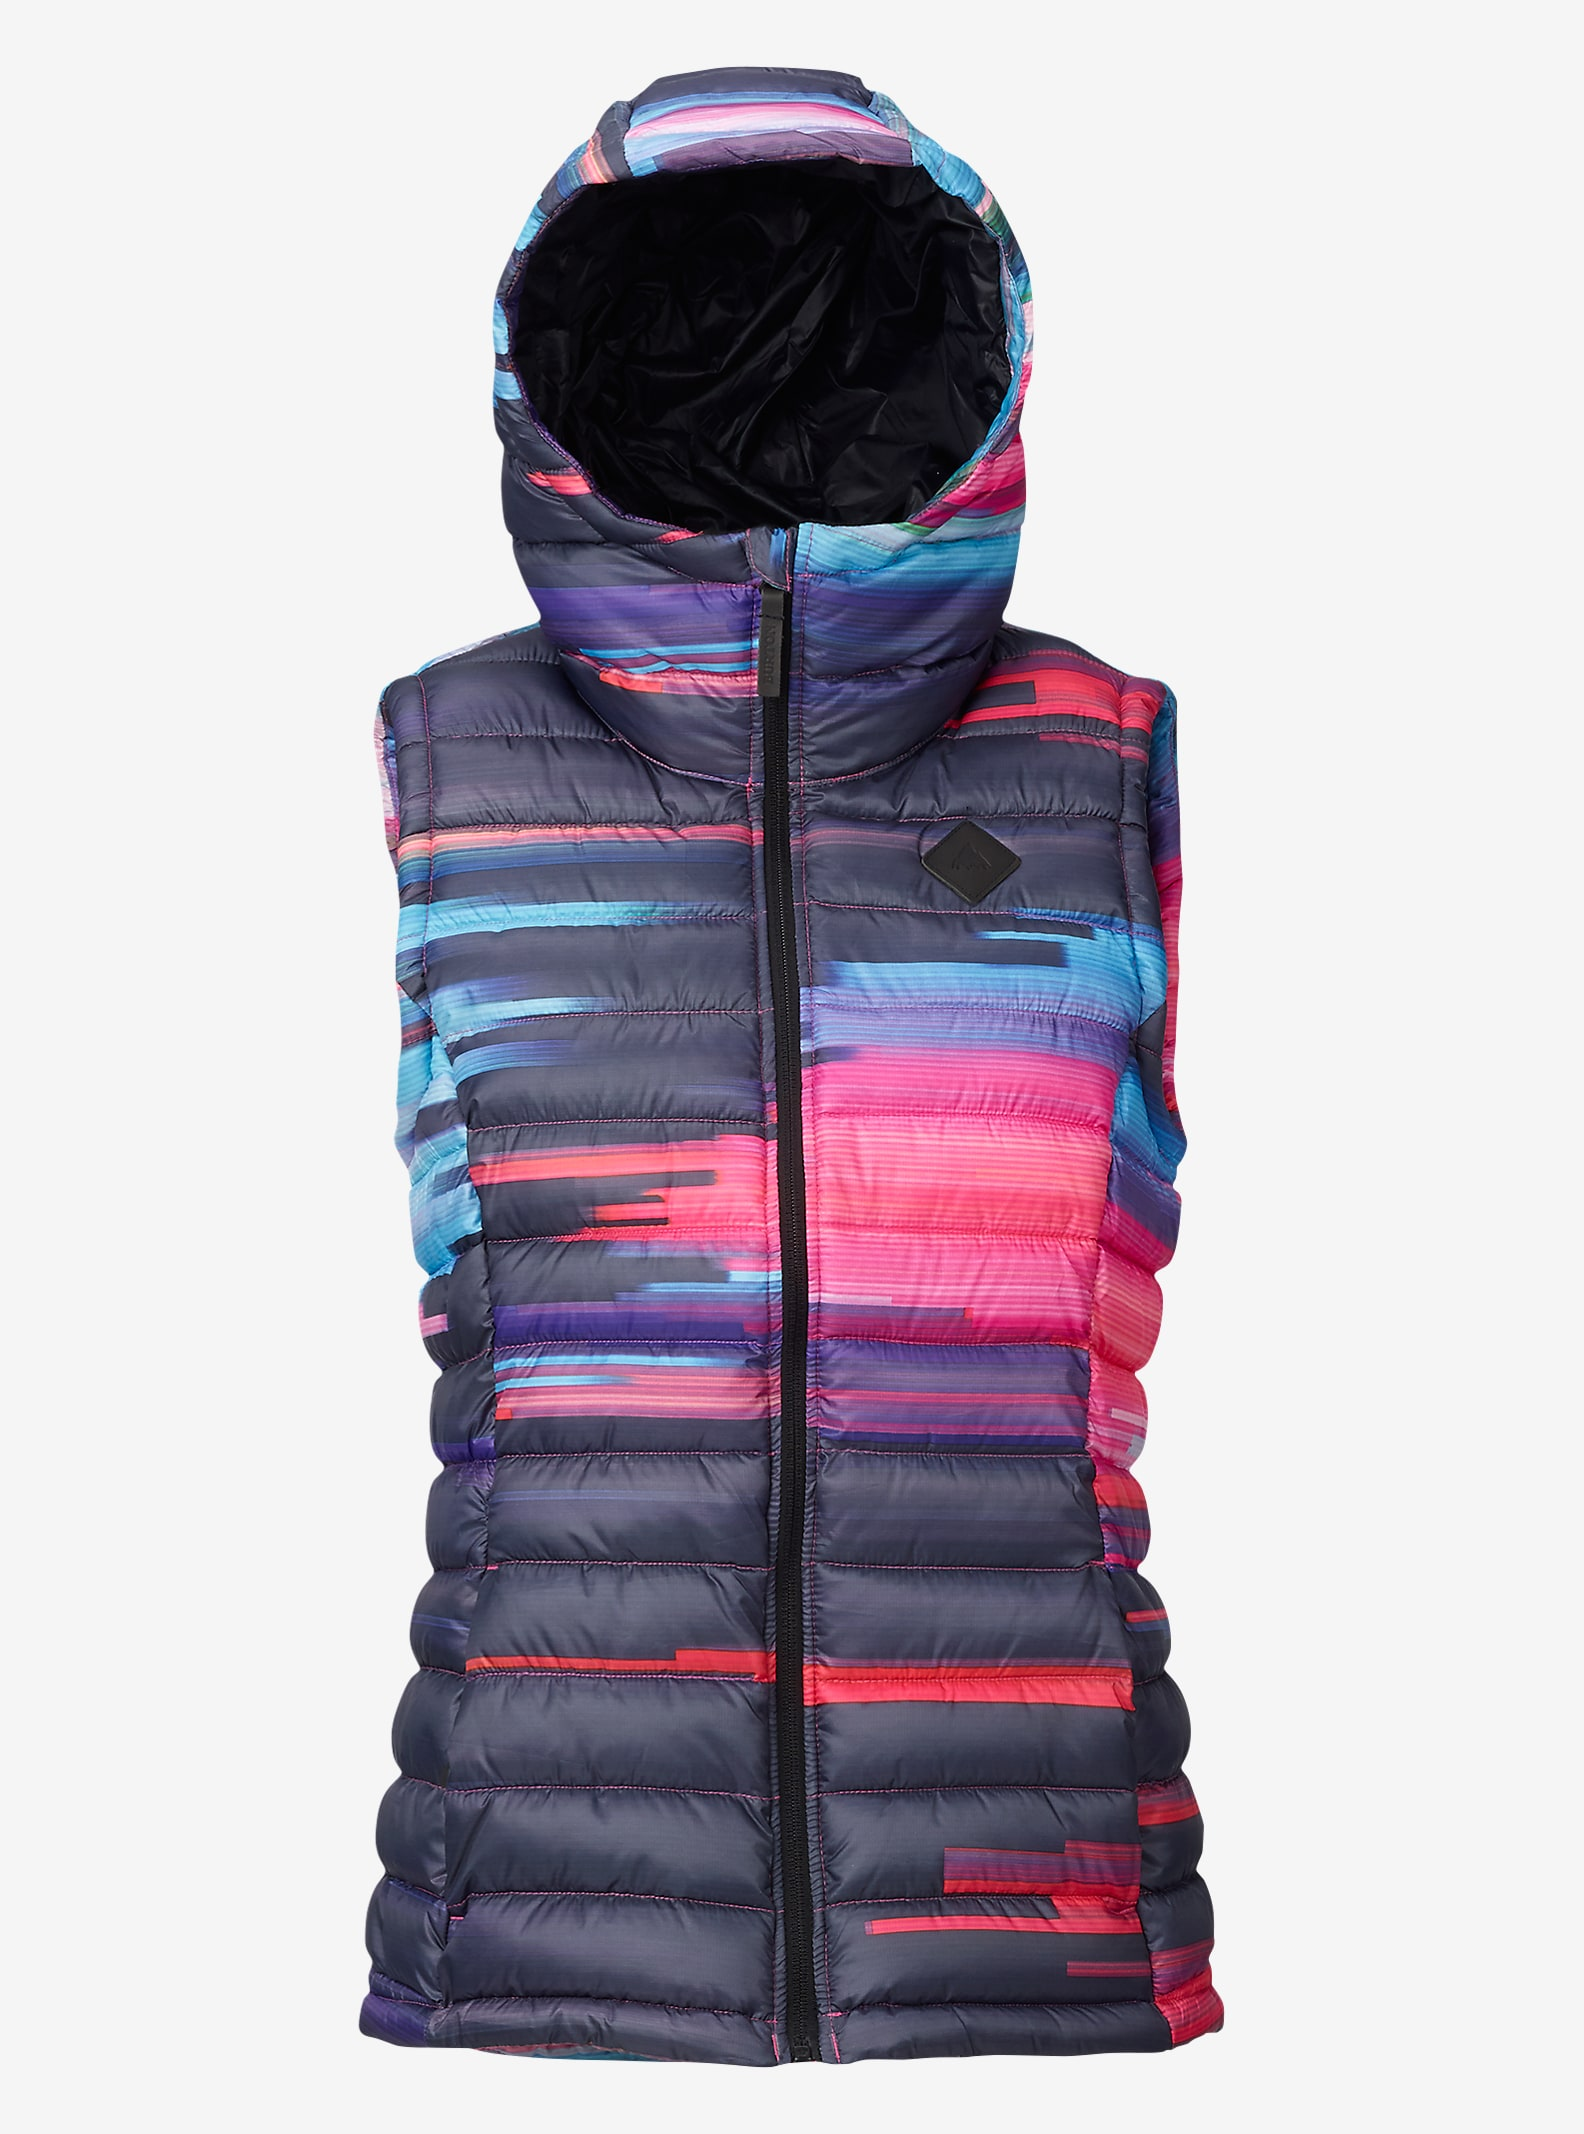 Burton Women's Evergreen Synthetic Vest Insulator shown in Flynn Glitch